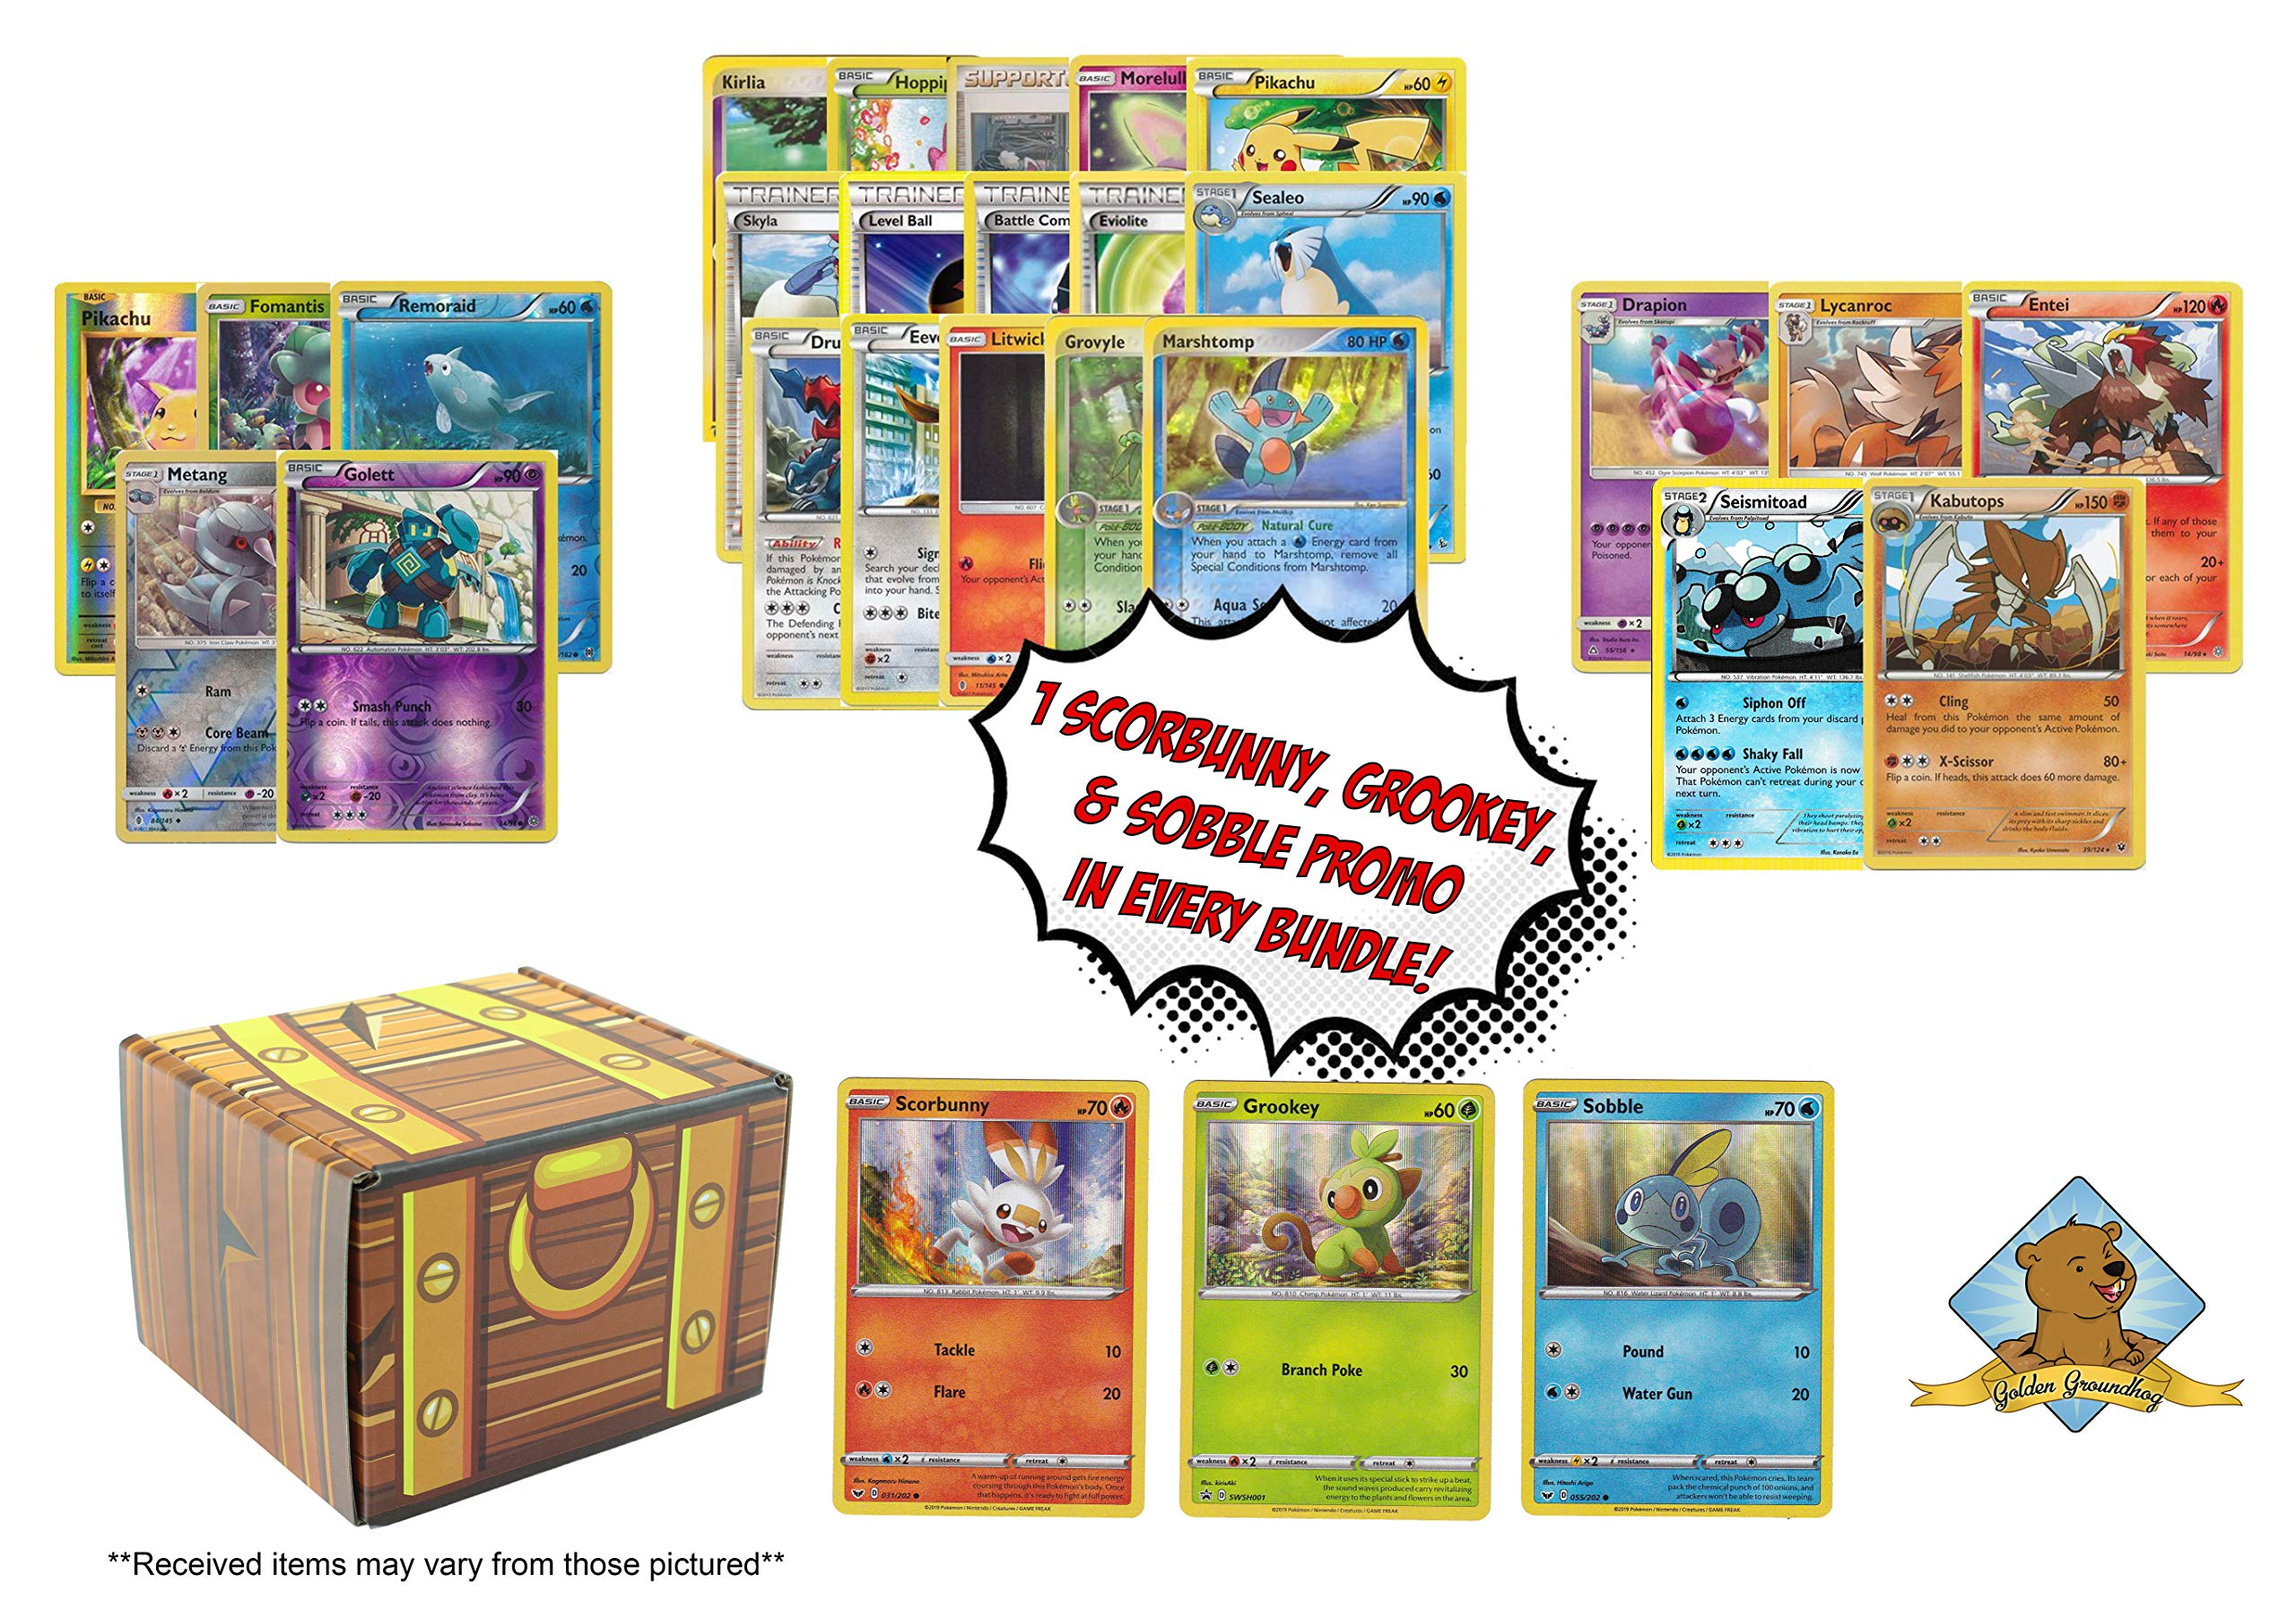 Pokemon 100 Card Lot Bonus Sword Shield Starter Pokemon Grookey Scorbunny Sobble Promo Cards Foils Rares Includes Golden Groundhog Treasure Box Choose from contactless same day delivery, drive up and more. yoybuy